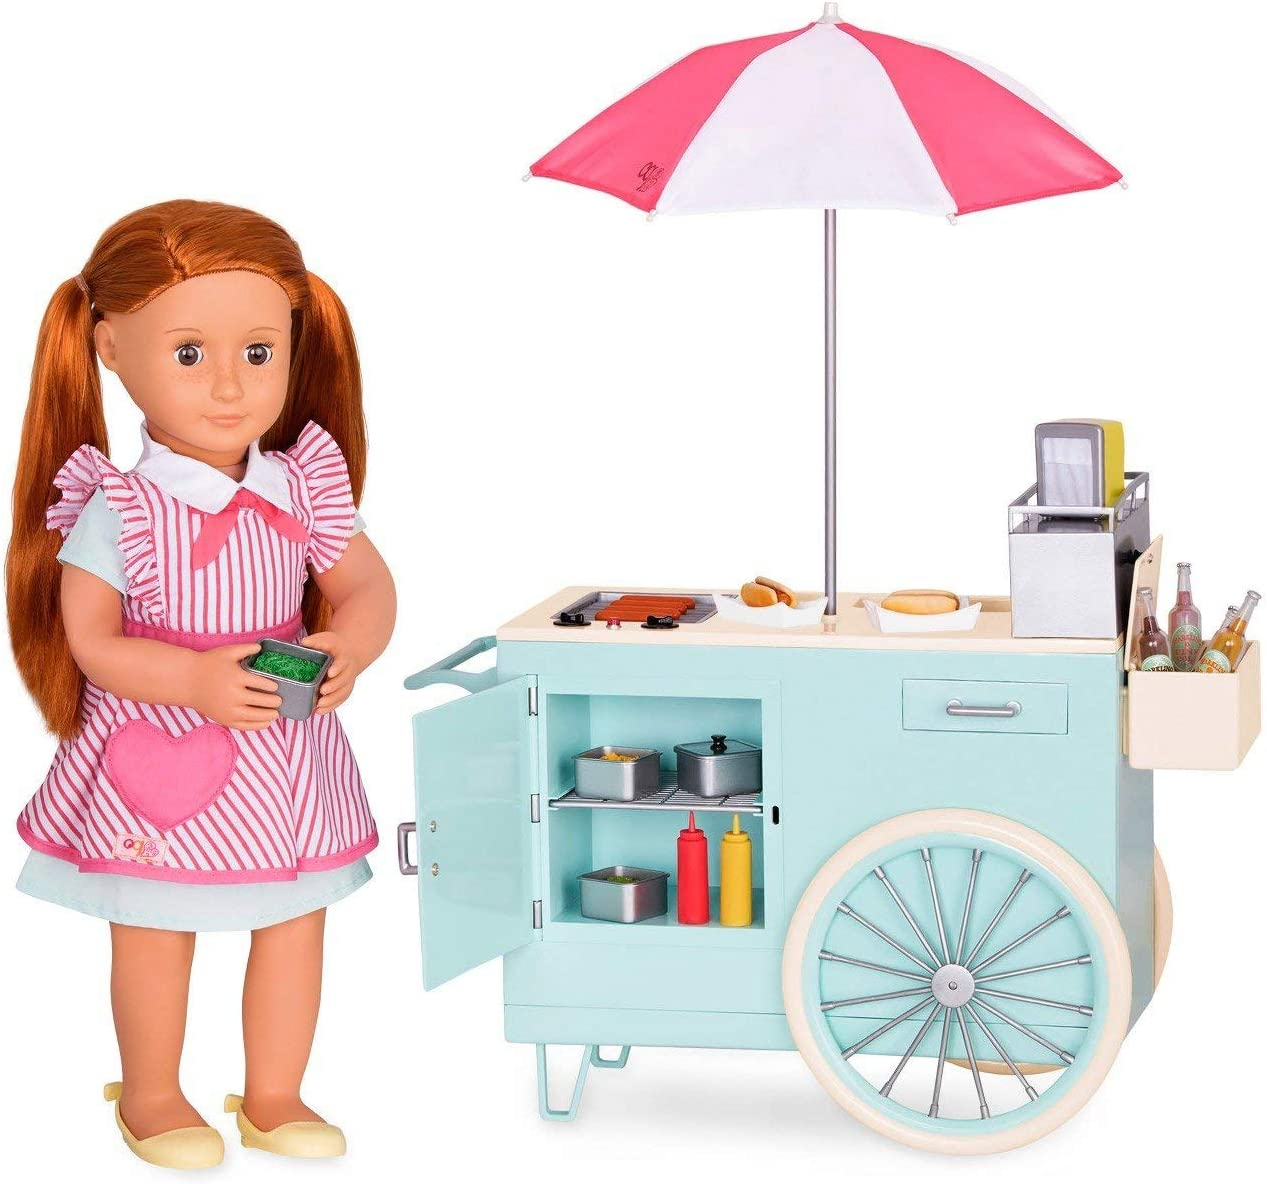 Cart /& Accessory Set for 18 Dolls Retro Hot Dog Cart Toy for Age 3 Years /& Up Our Generation by Battat